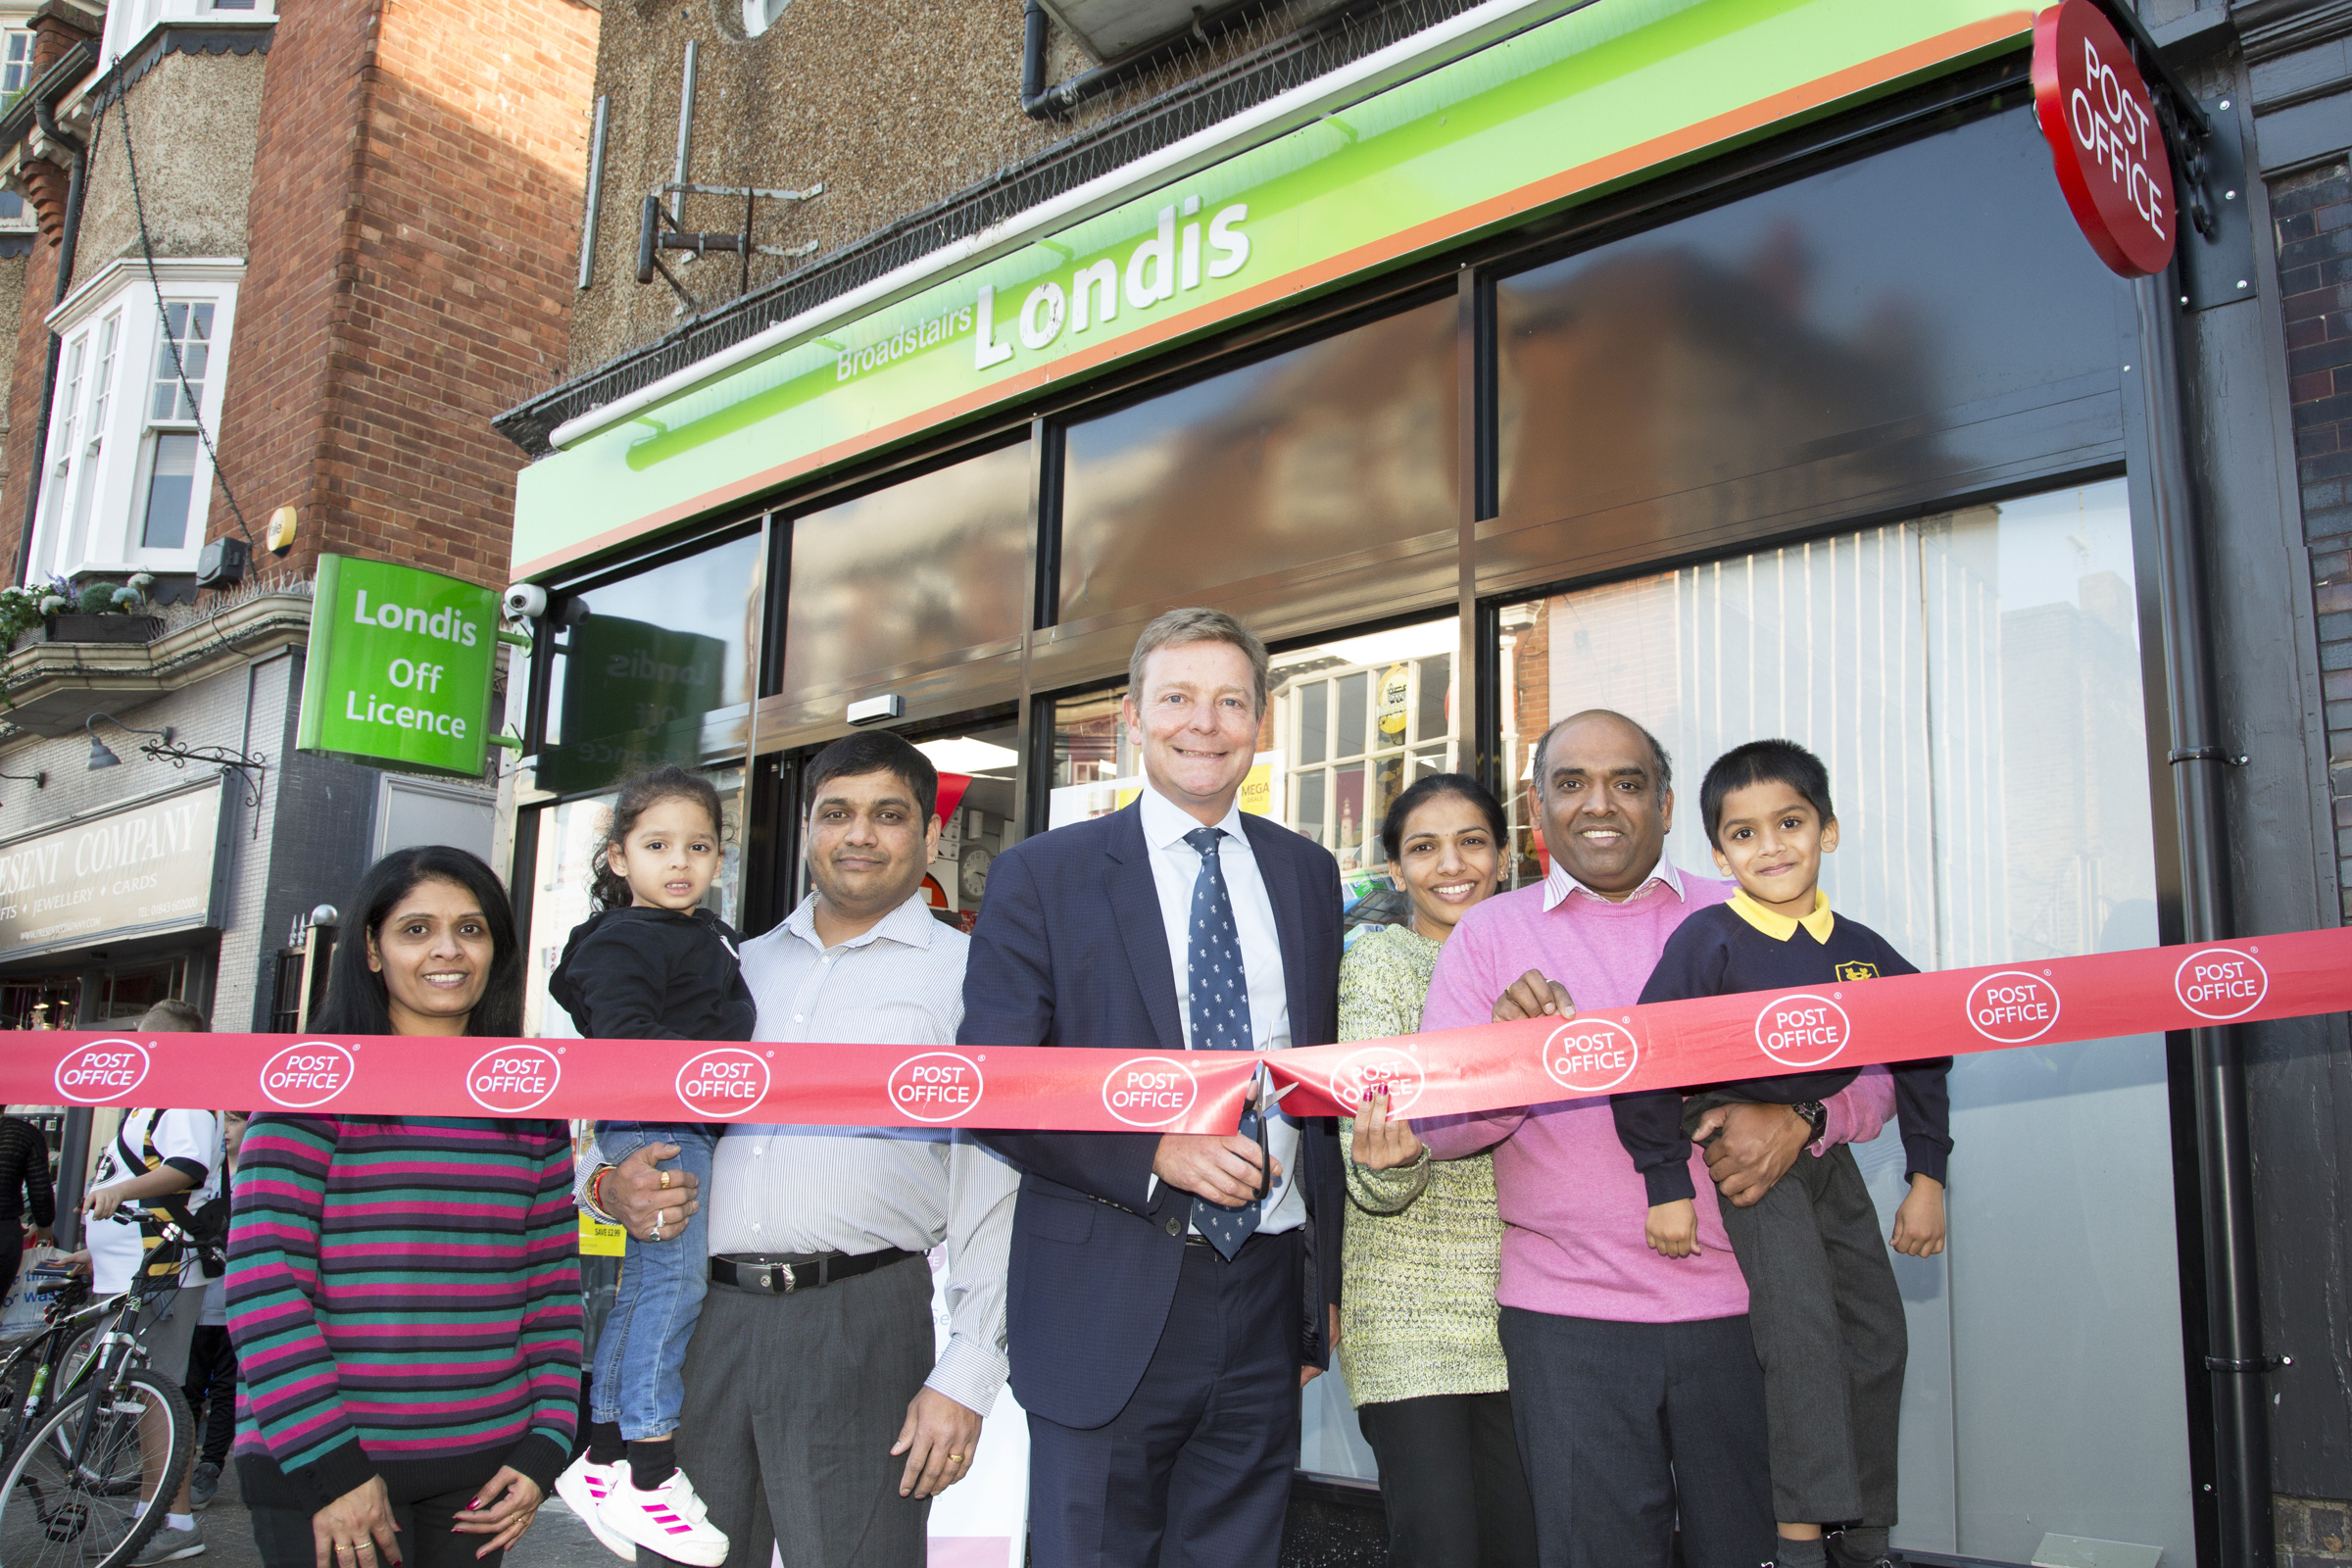 Craig opening the Londis Store's Post Office in the High Street at Broadstairs